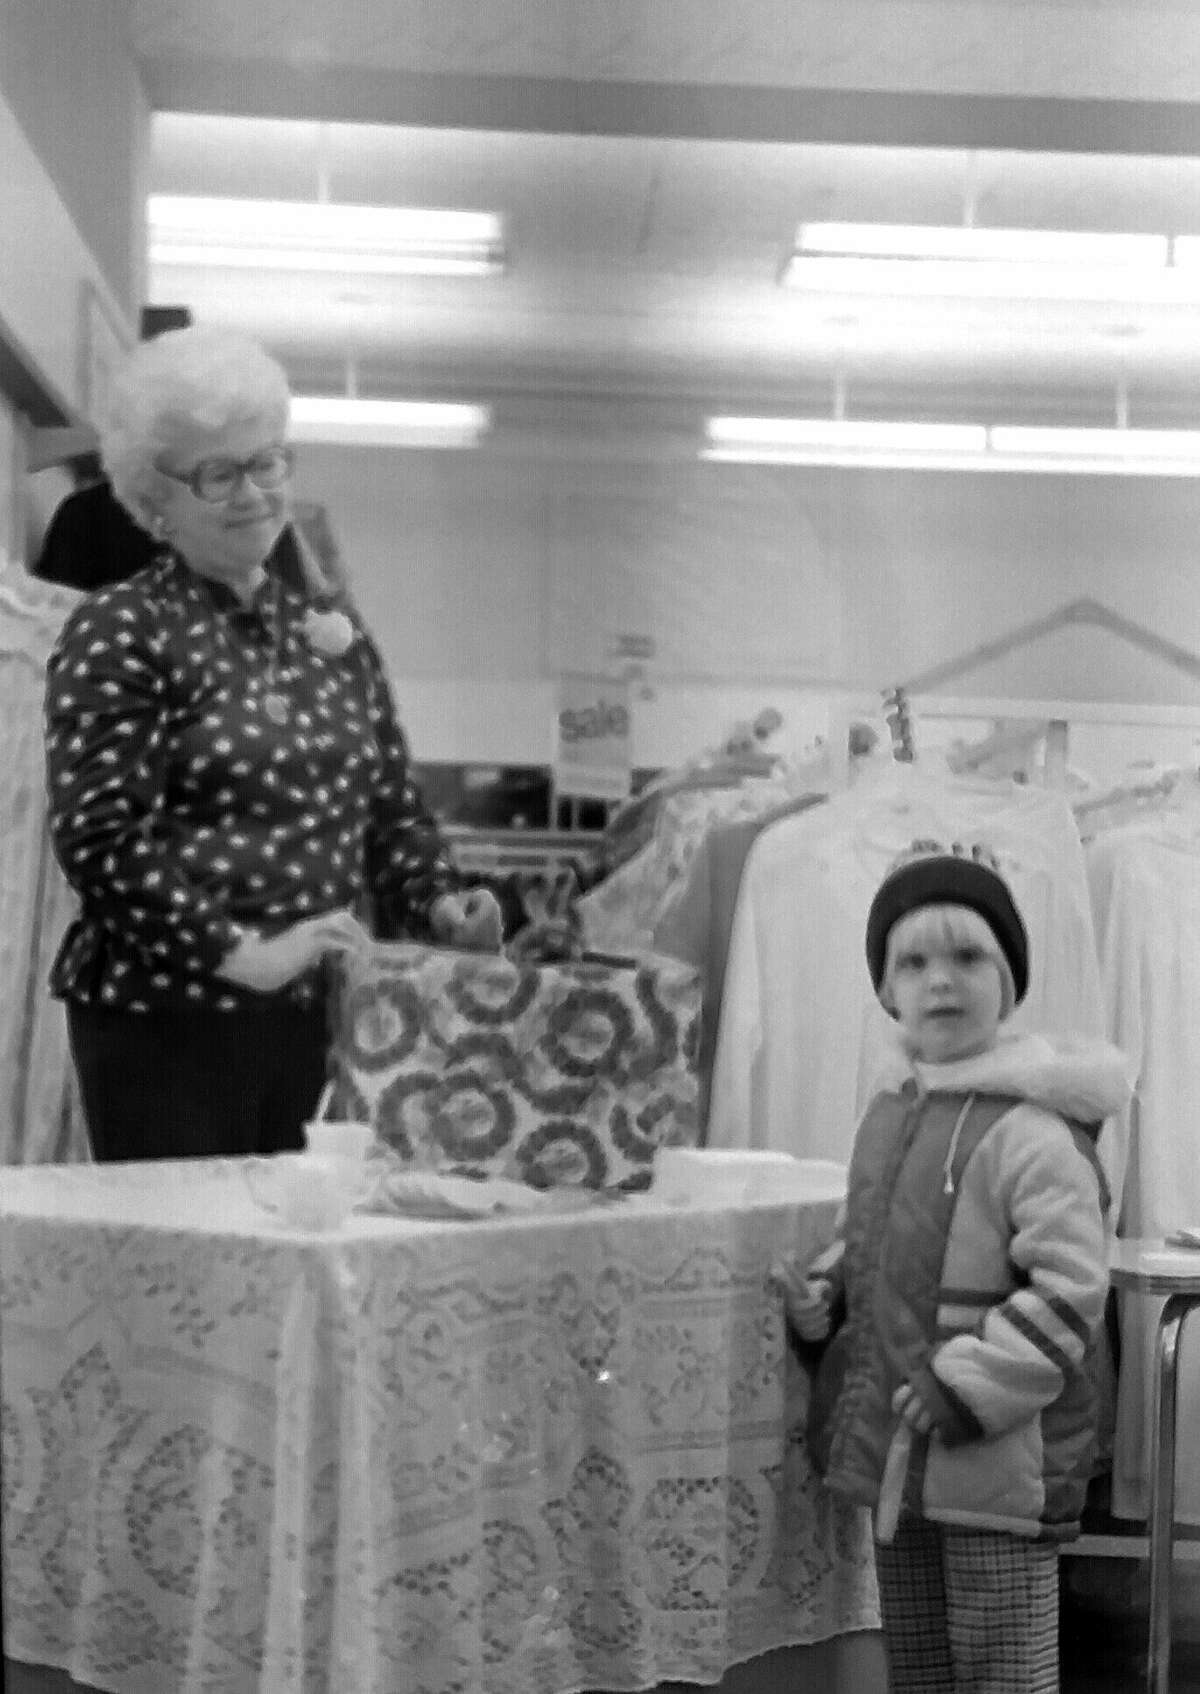 """From the Nov. 21, 1980 issue of the News Advocate, """"J.C. Penney is celebrating a grand 're-opening' in honor of the store's recent refurbishing efforts. Store employee Helen Colton smiles as small customer Laura Merritts ponders the choice between a free sucker and a free cookie. The gift box holds names to be drawn for two free gift certificates."""" (Manistee County Historical Museum photo)"""